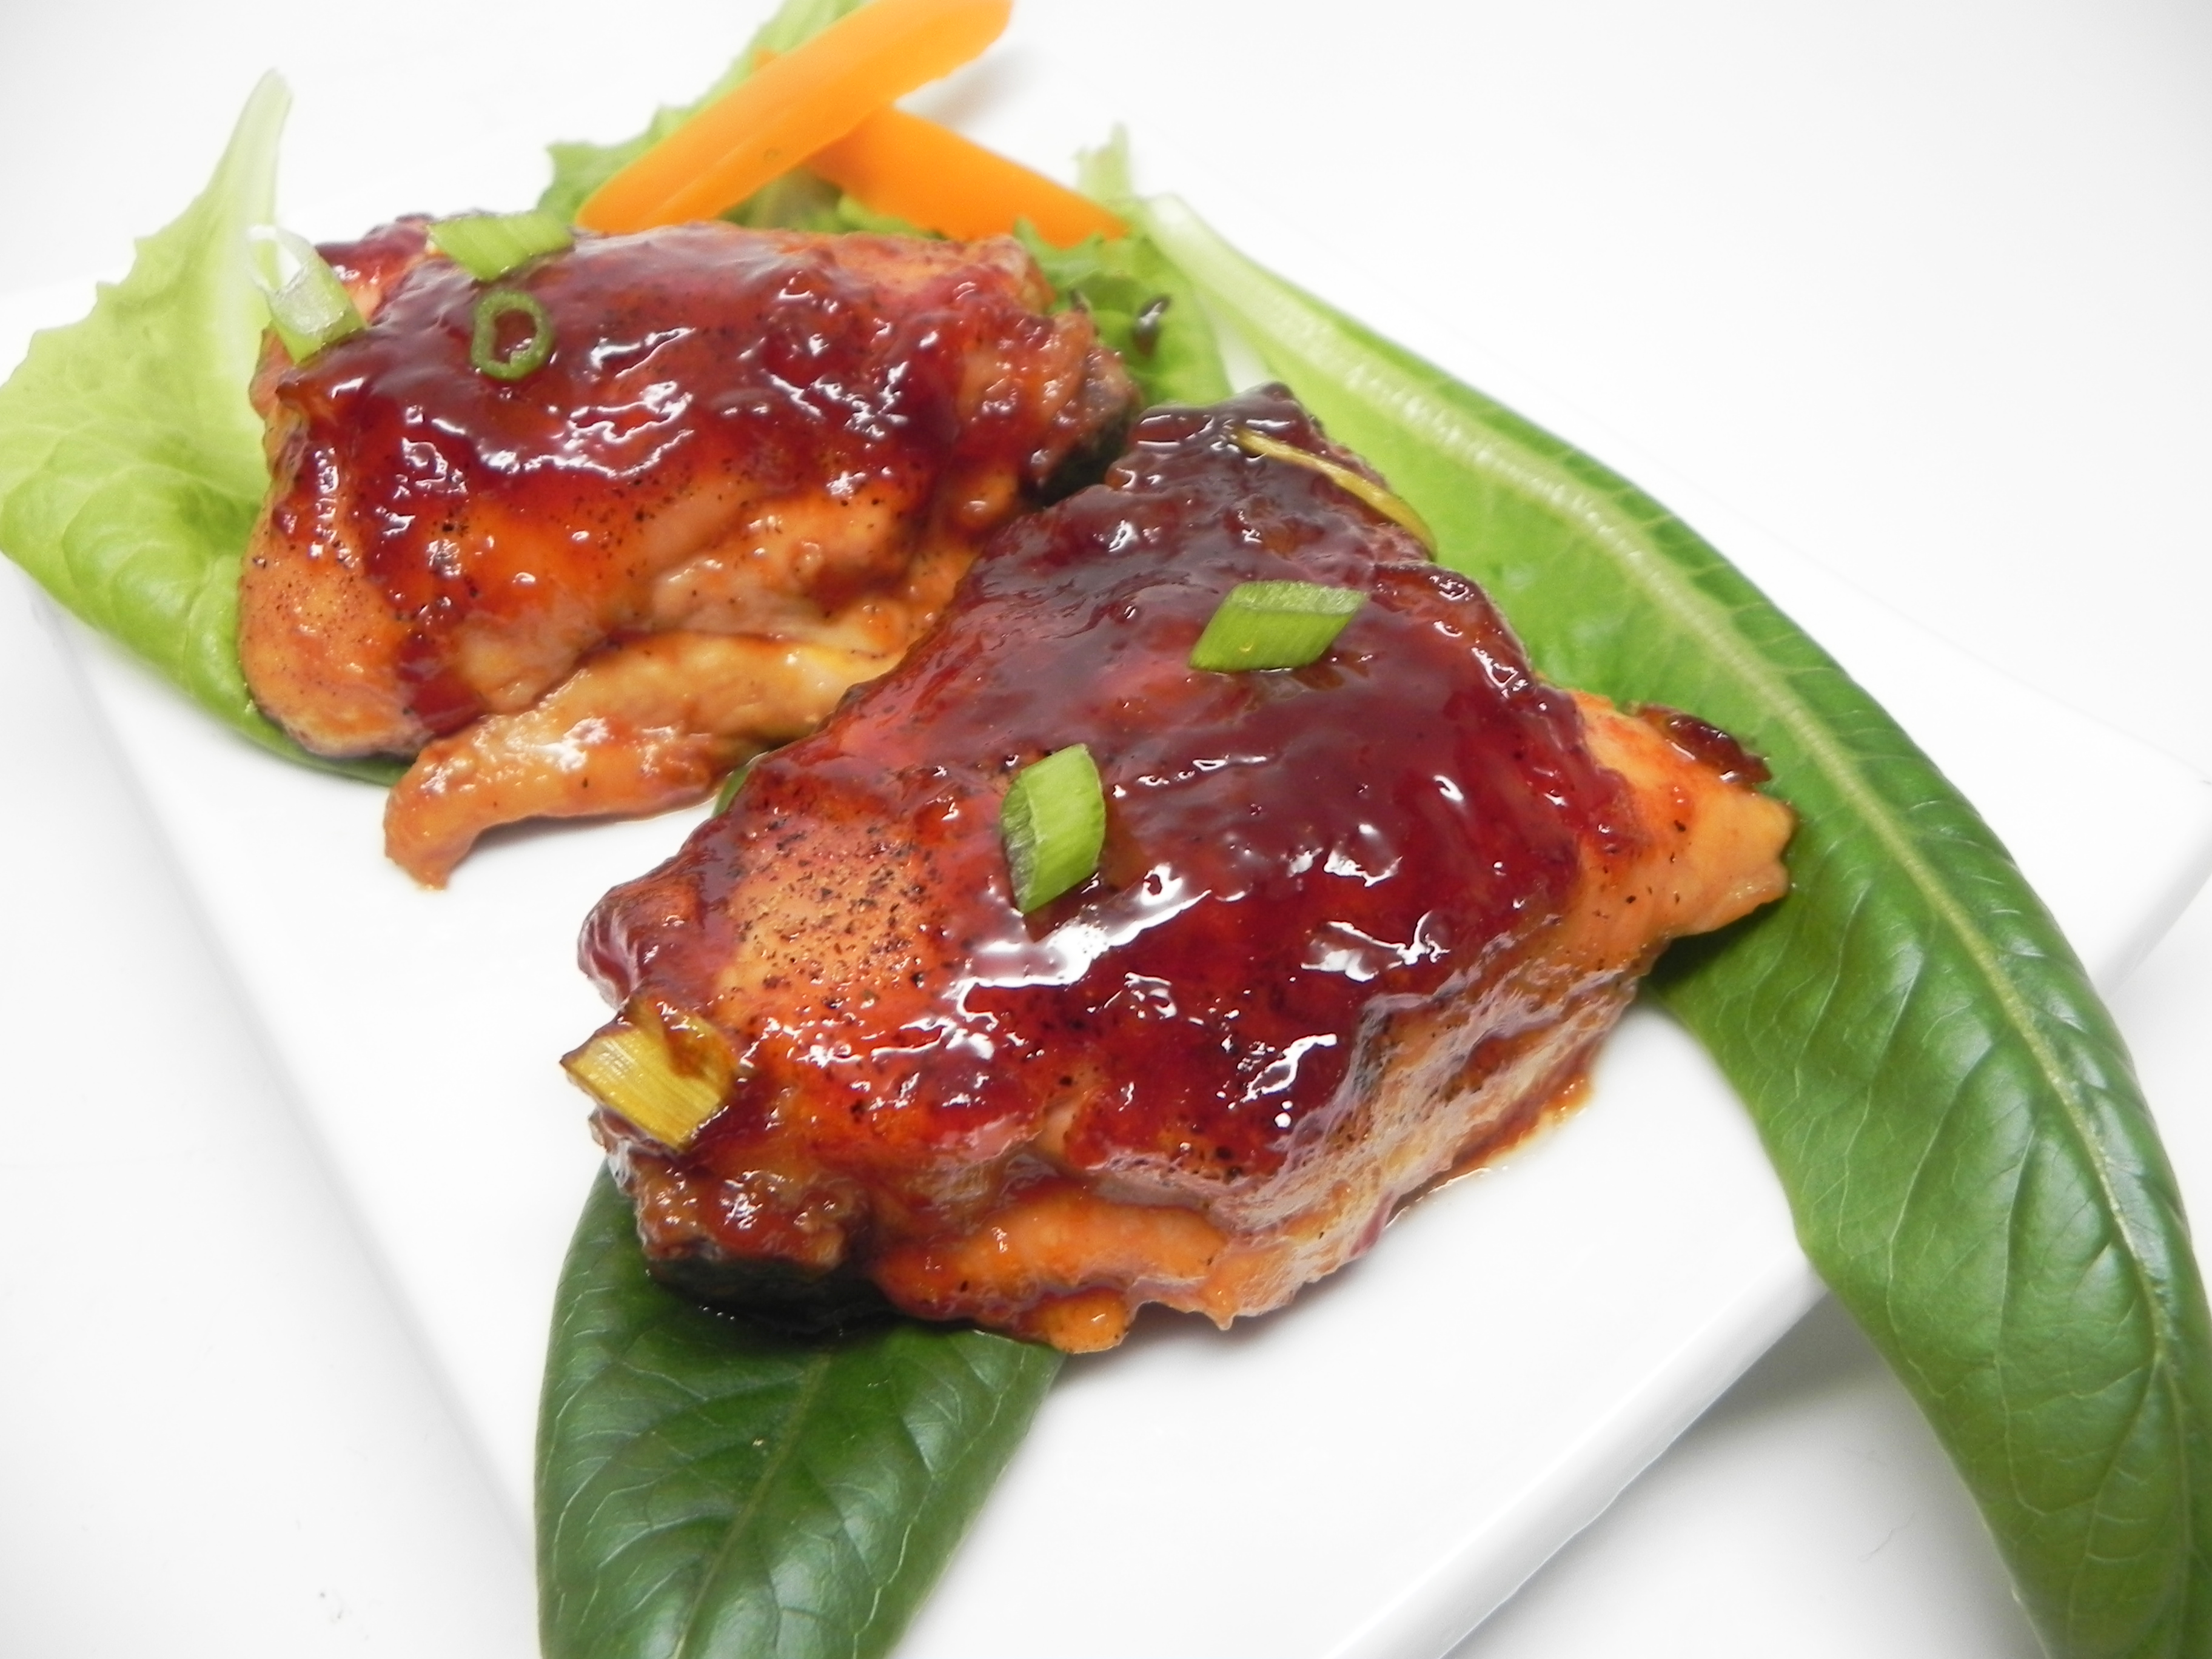 For those who love tangy, sweet, sticky chicken dishes, this easy recipe is a must try. Apricot jam forms the base for a super sauce, embellished with a little ketchup and BBQ sauce for good measure. Kids love these chicken thighs, of course, but rest assured — the whole family will be asking for more!